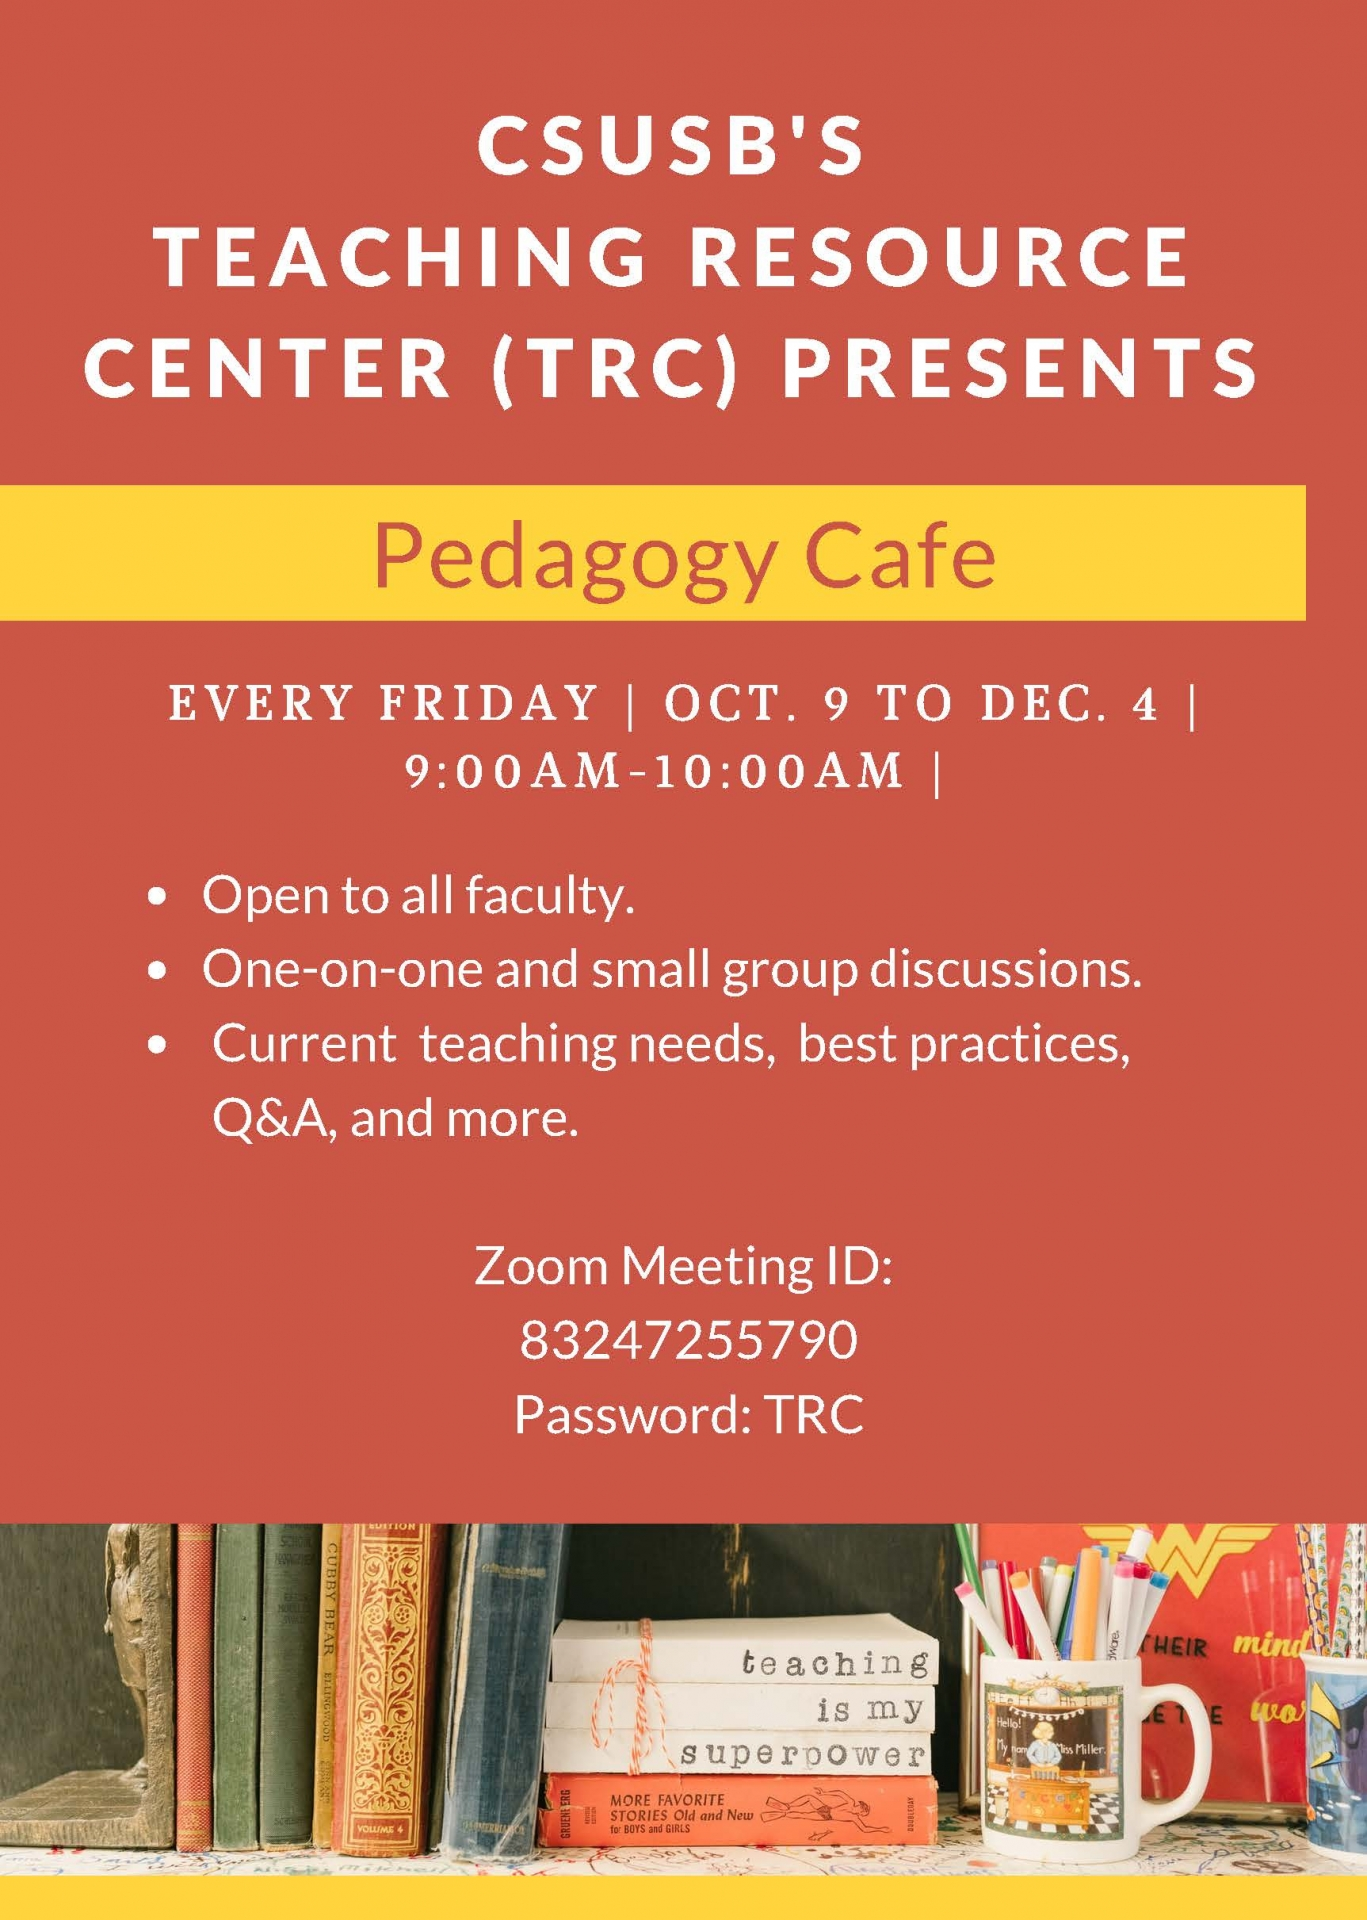 Pedagogy Cafe every Friday 9am to 10am